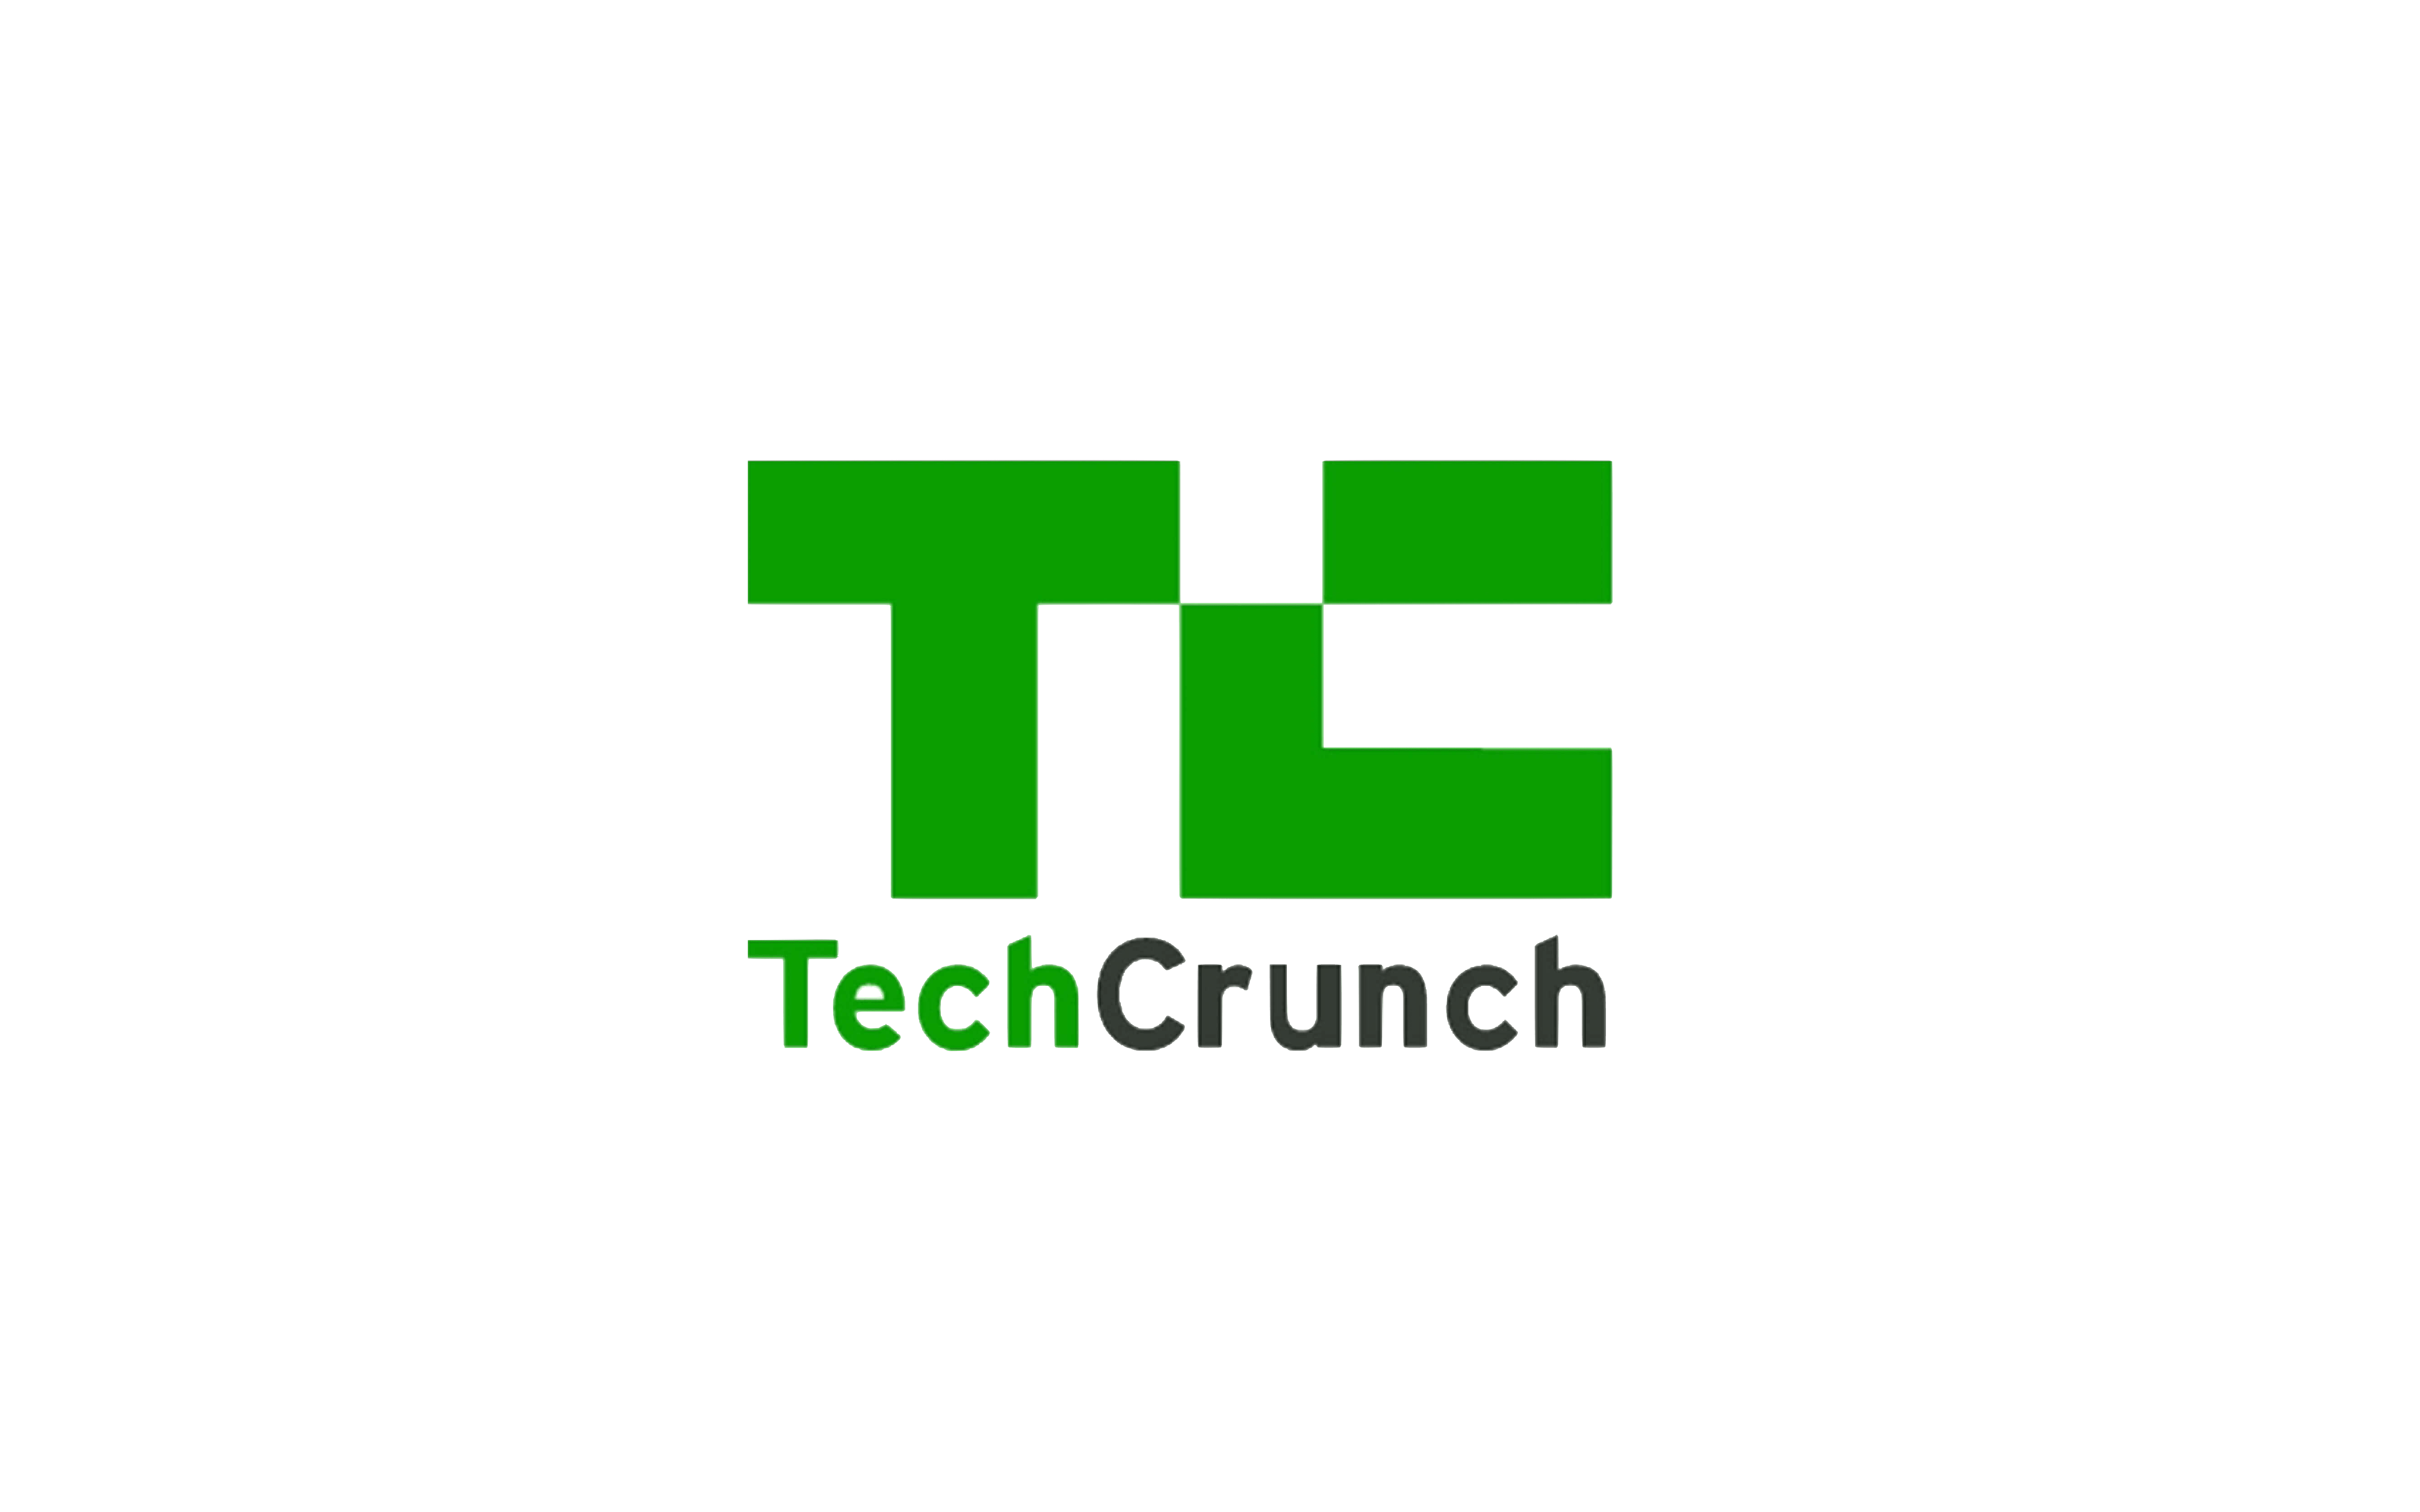 Tech chrunch